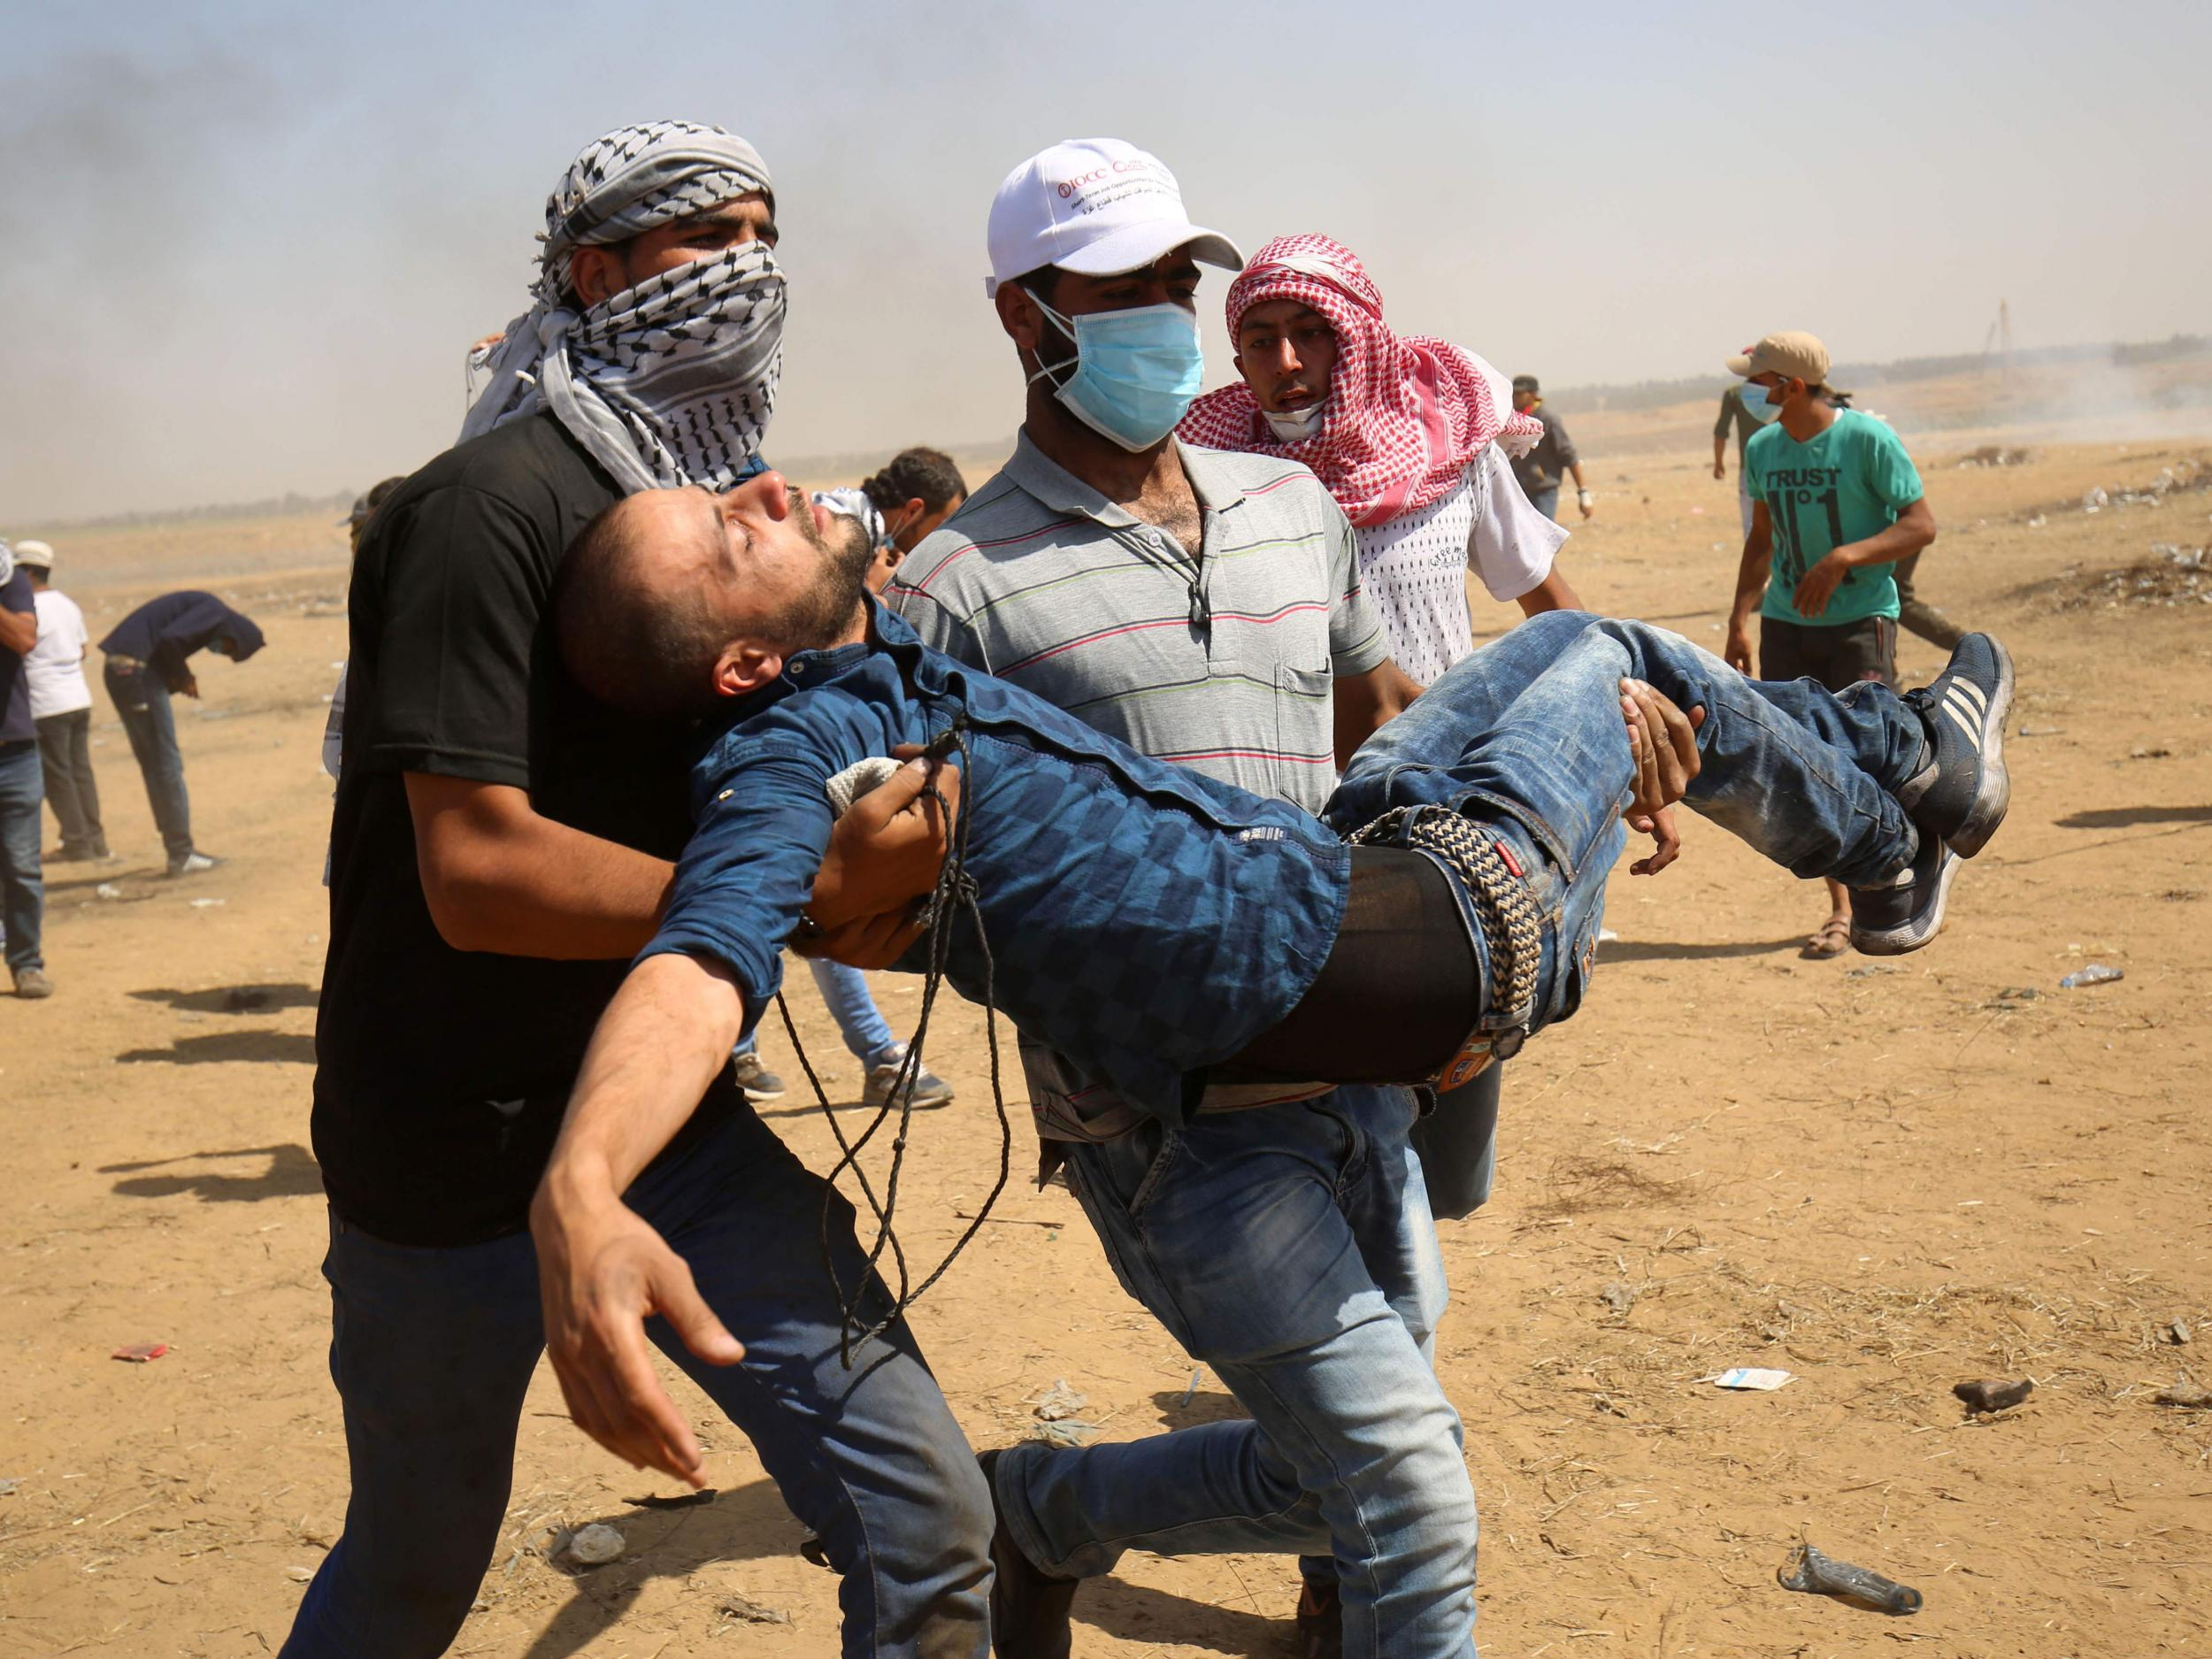 One dead and hundreds wounded as fresh violence breaks out at Gaza protest